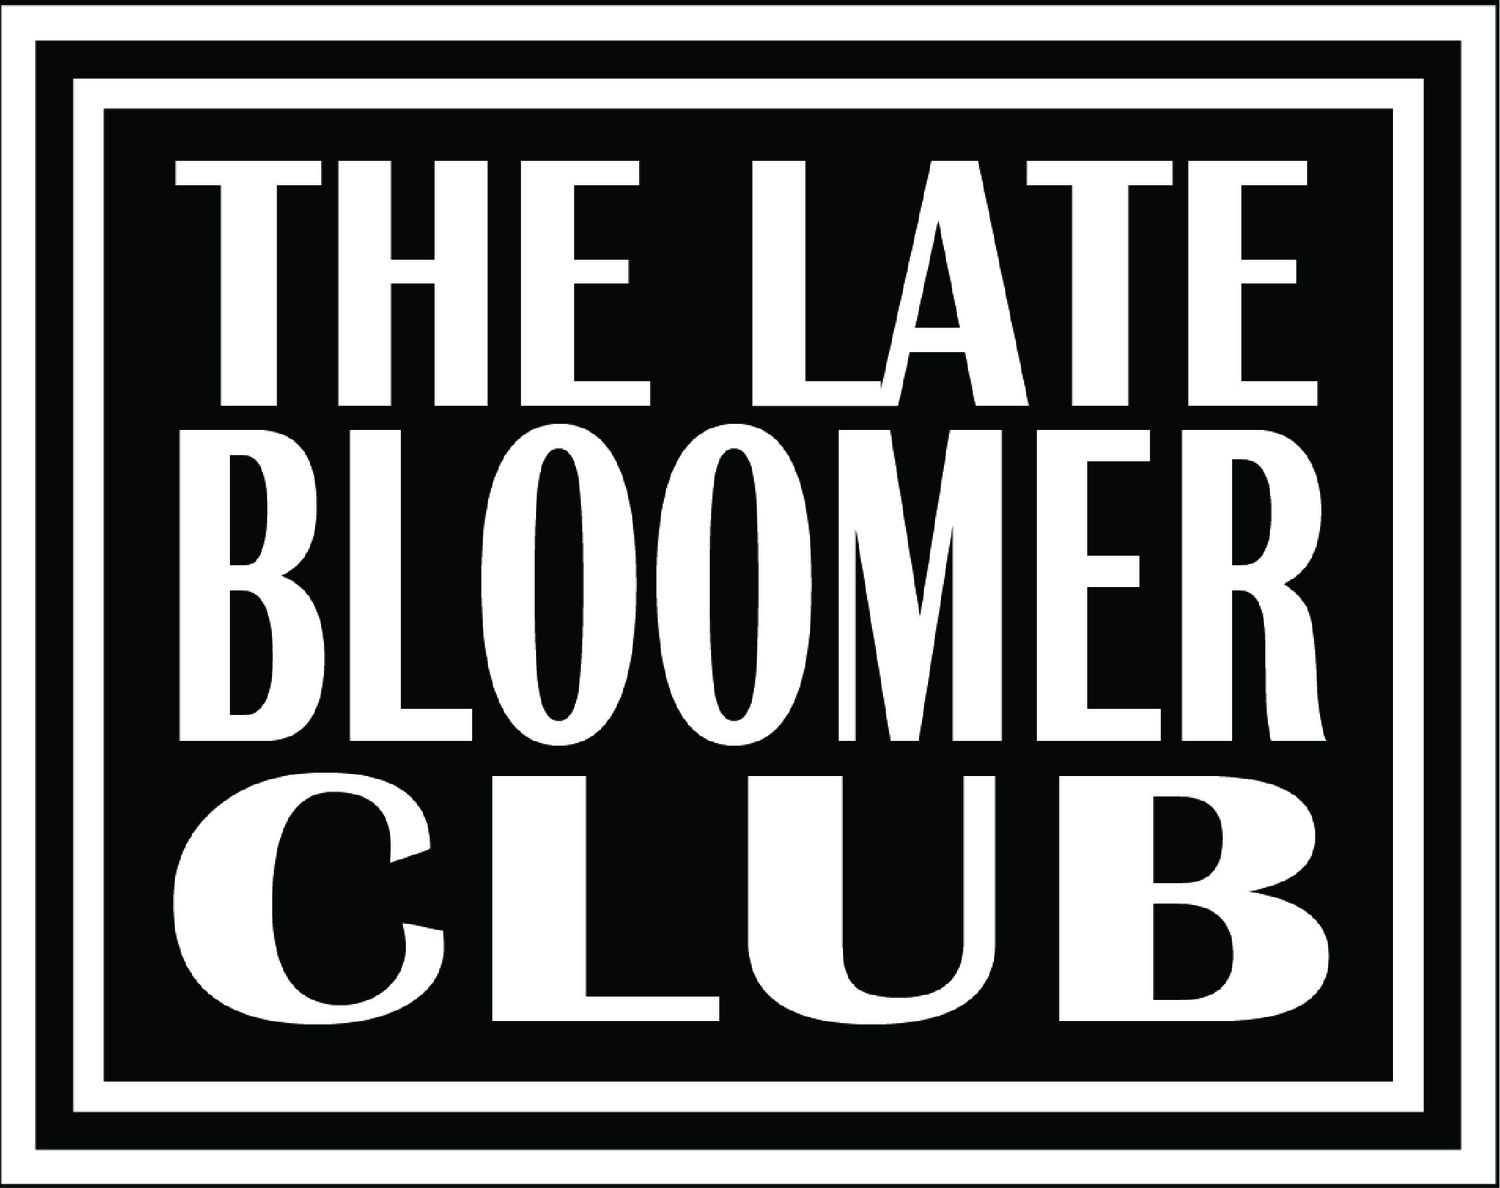 Late Bloomer Club